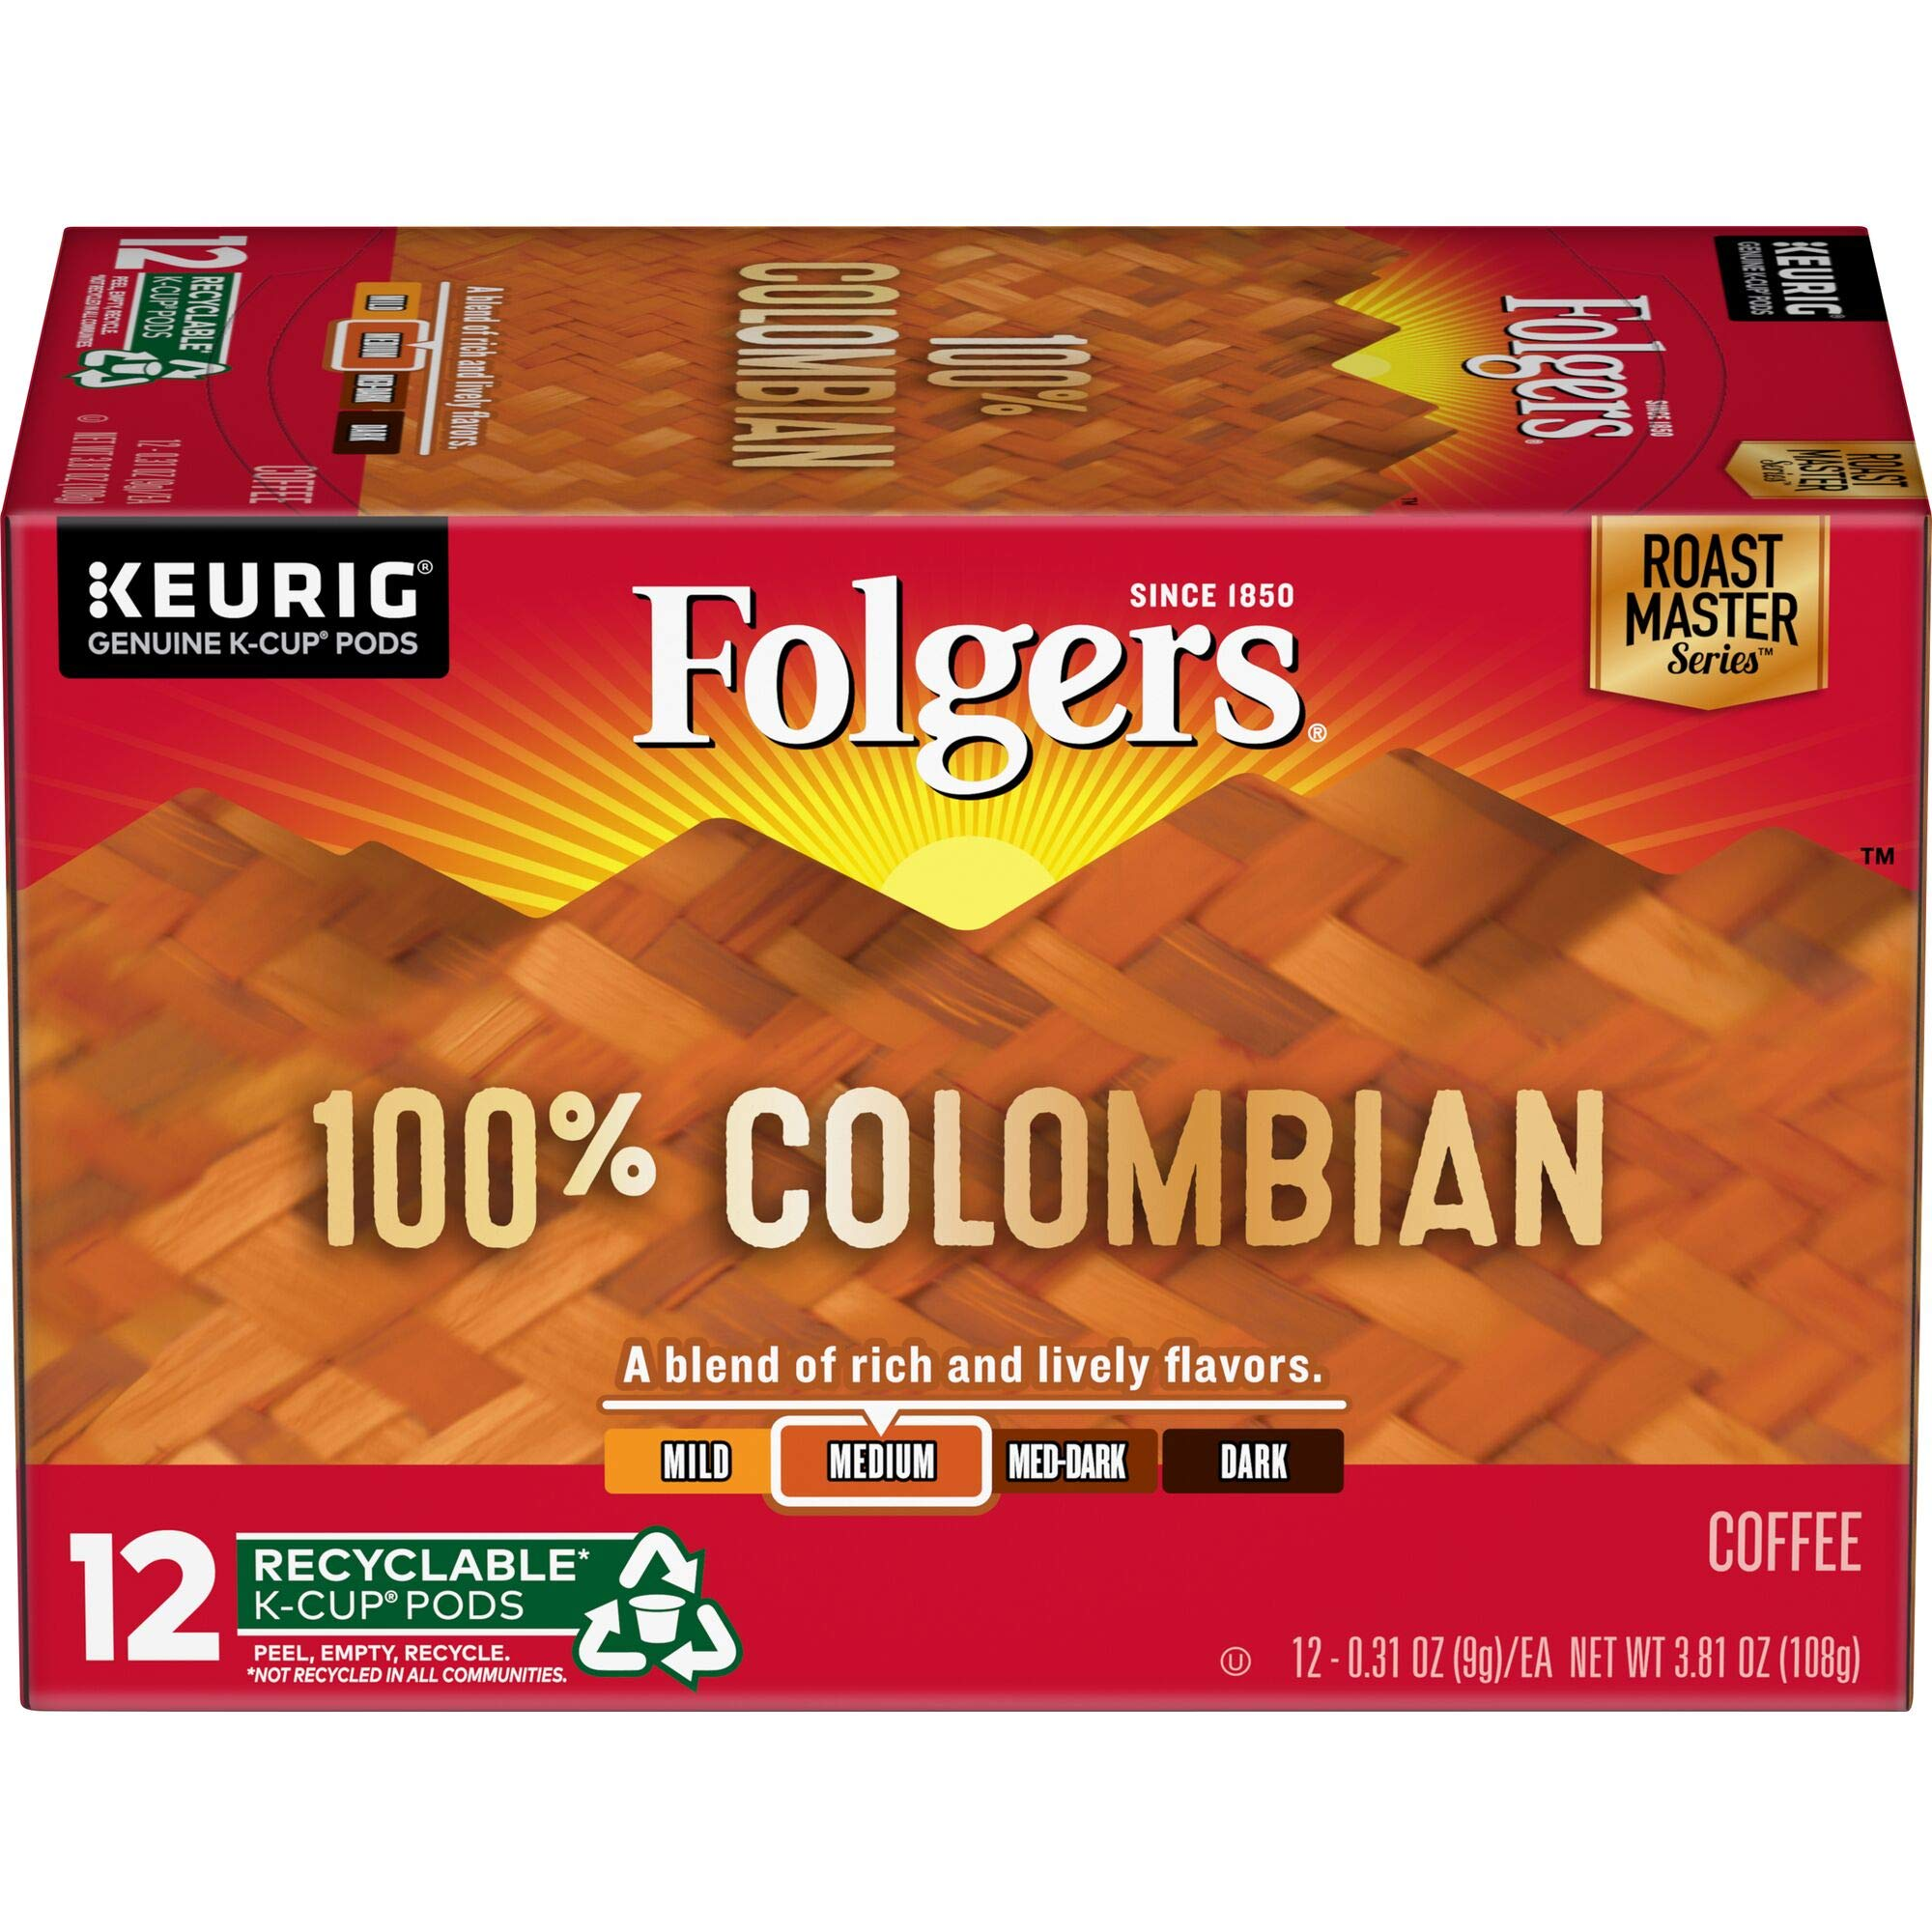 Folgers K Cups 100% Colombian Coffee for Keurig Makers, Medium Roast, 72 Count by Folgers